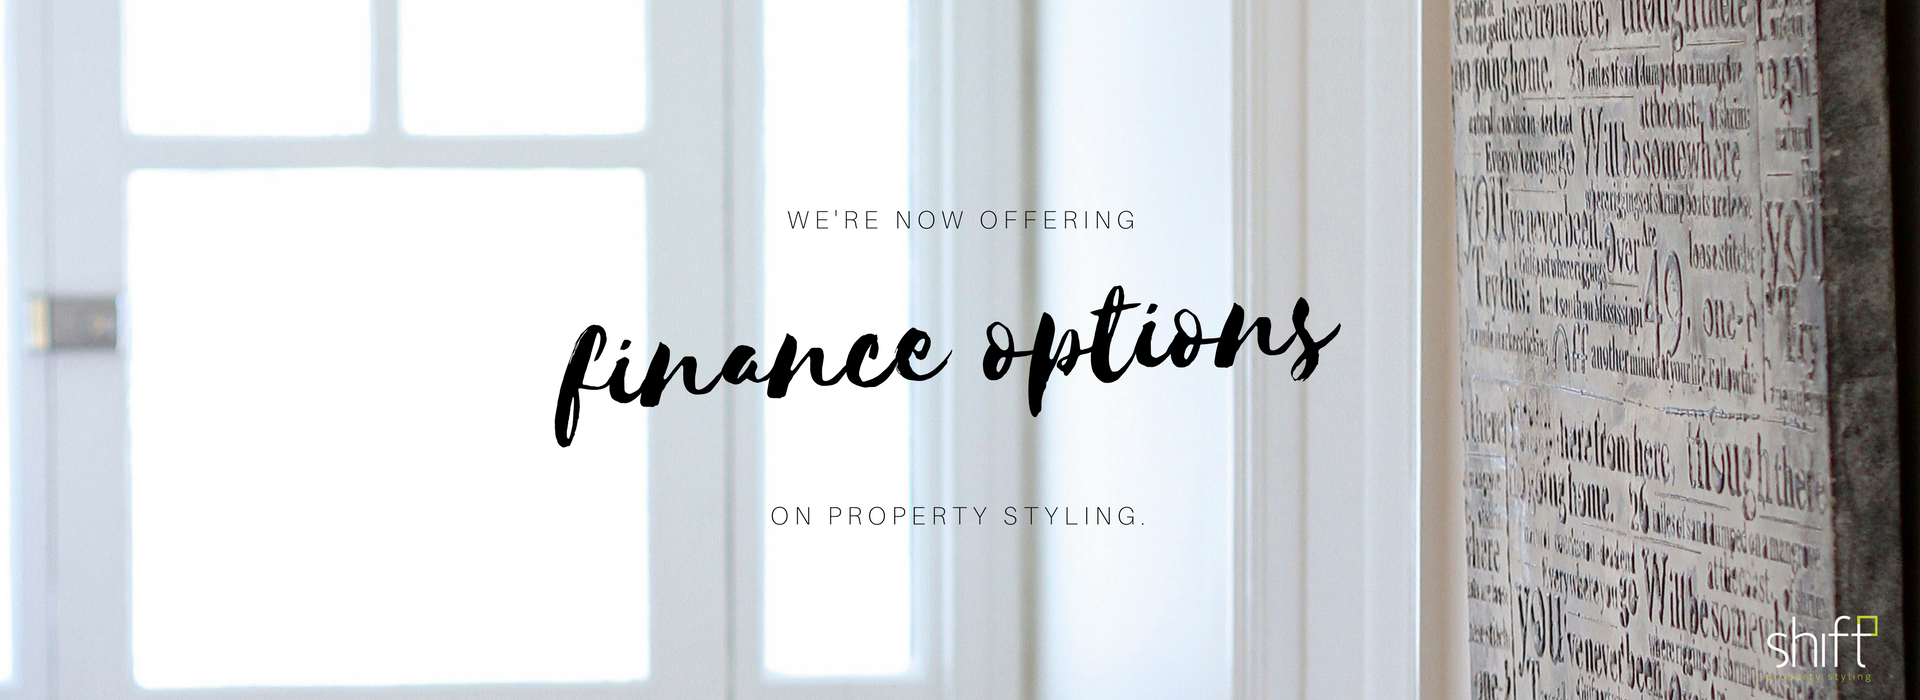 Finance options for property styling